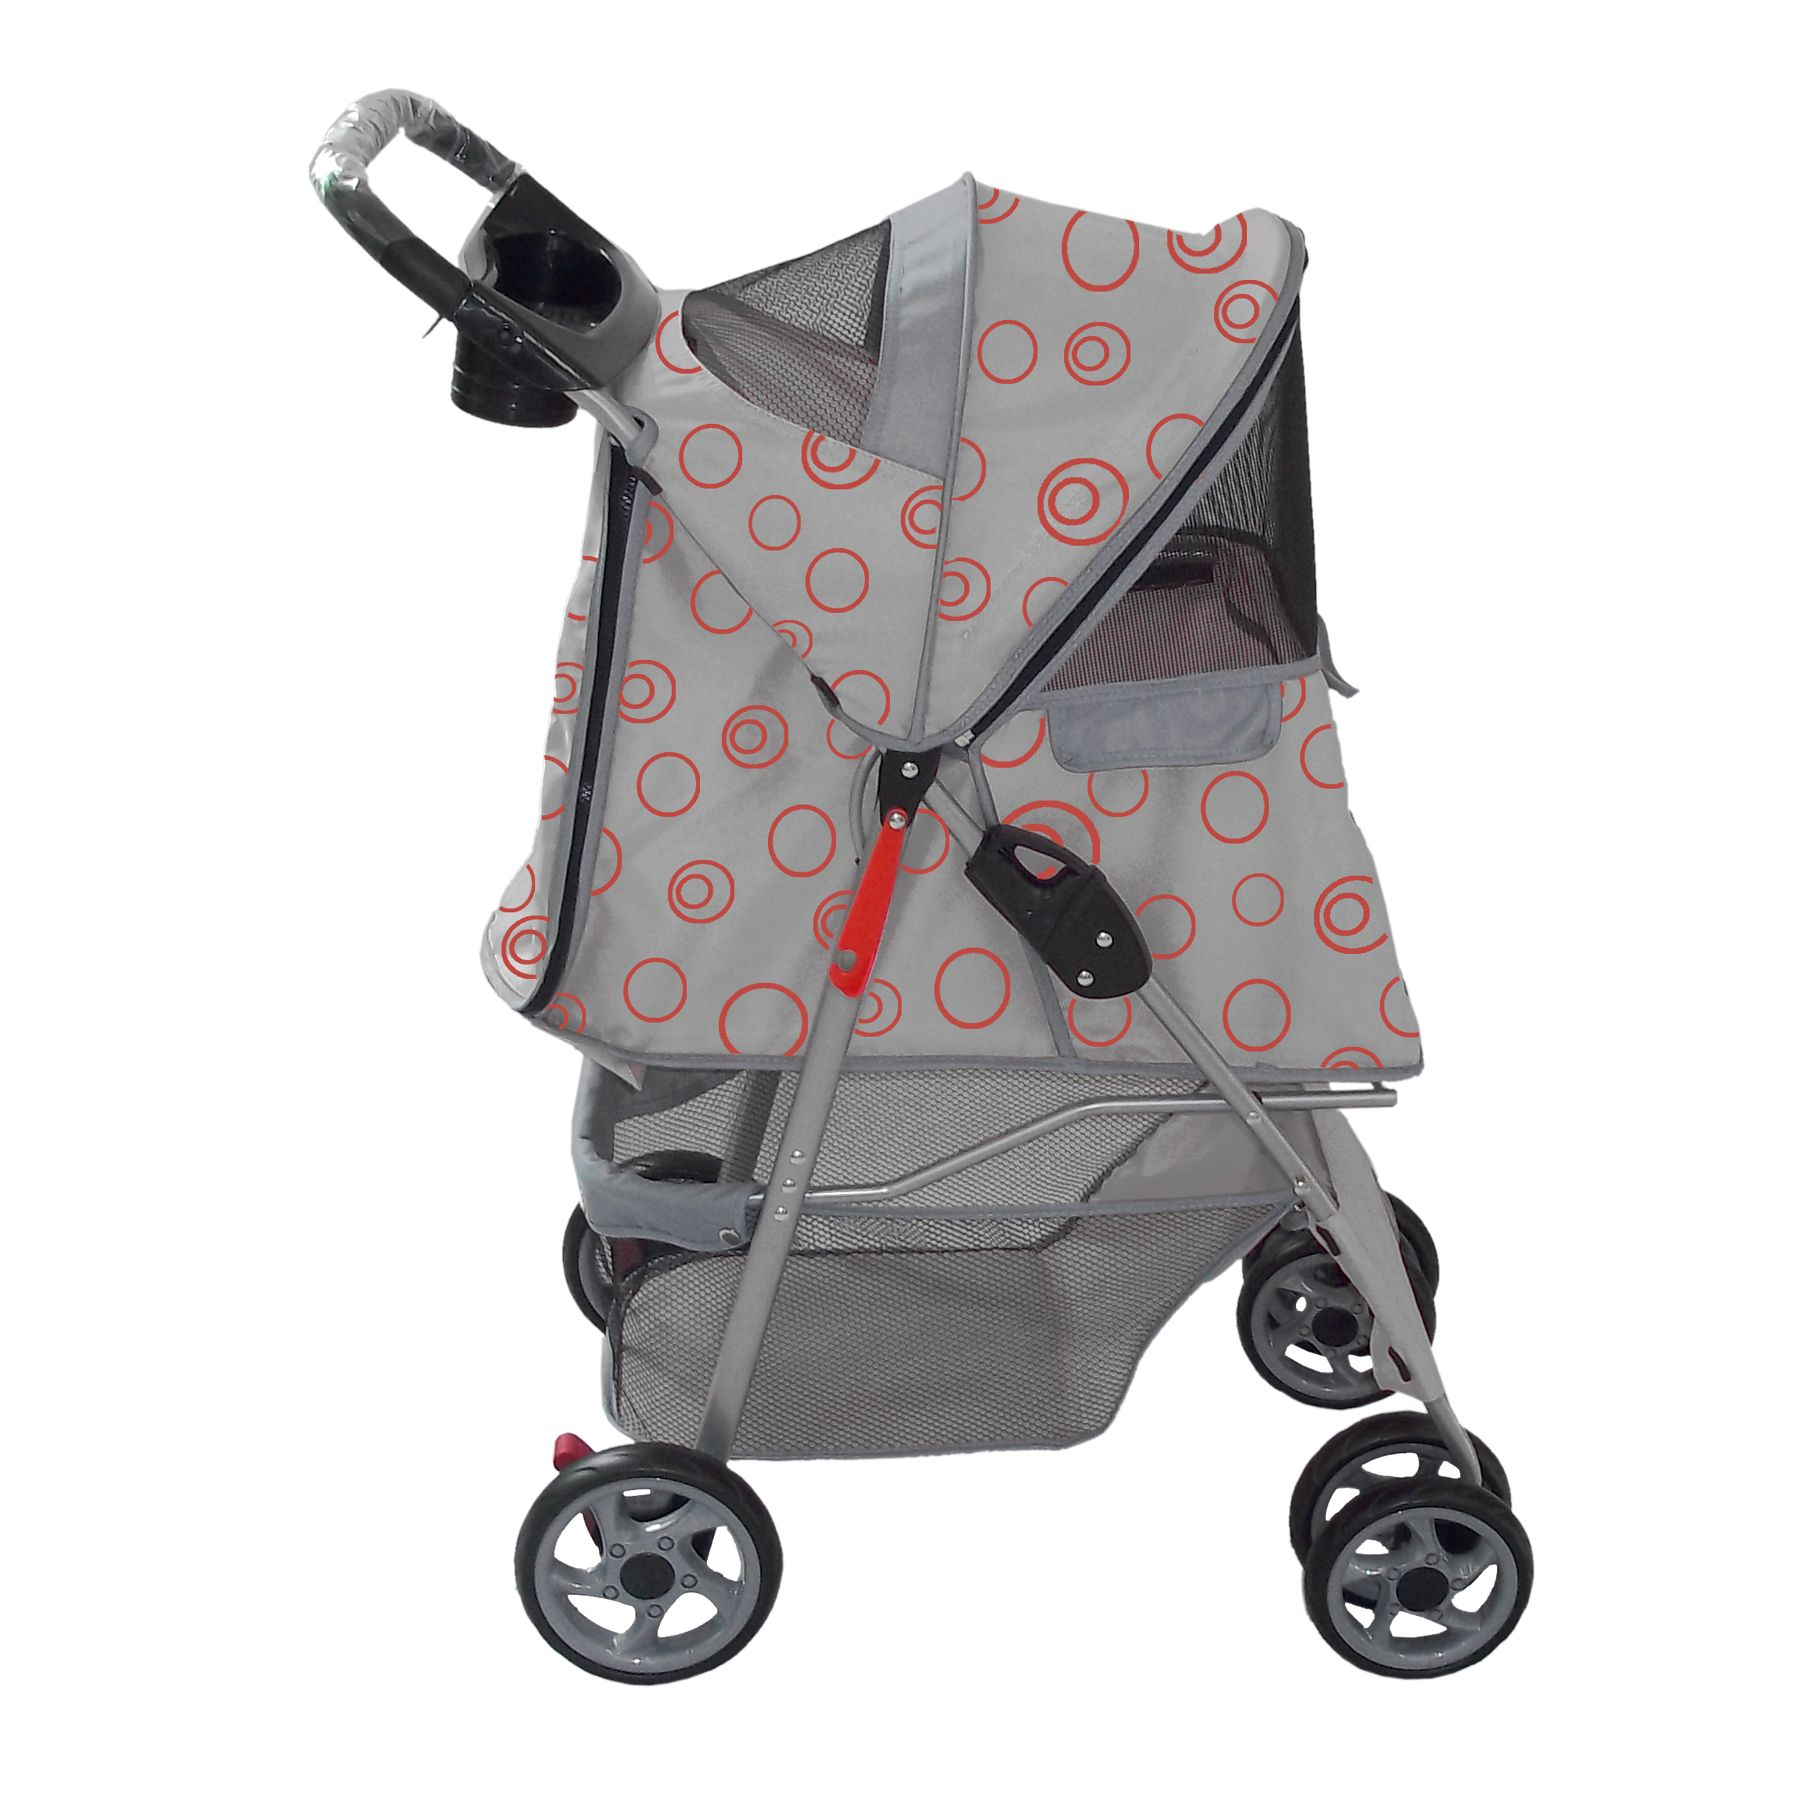 Gray Pet strollers for cats and dogs